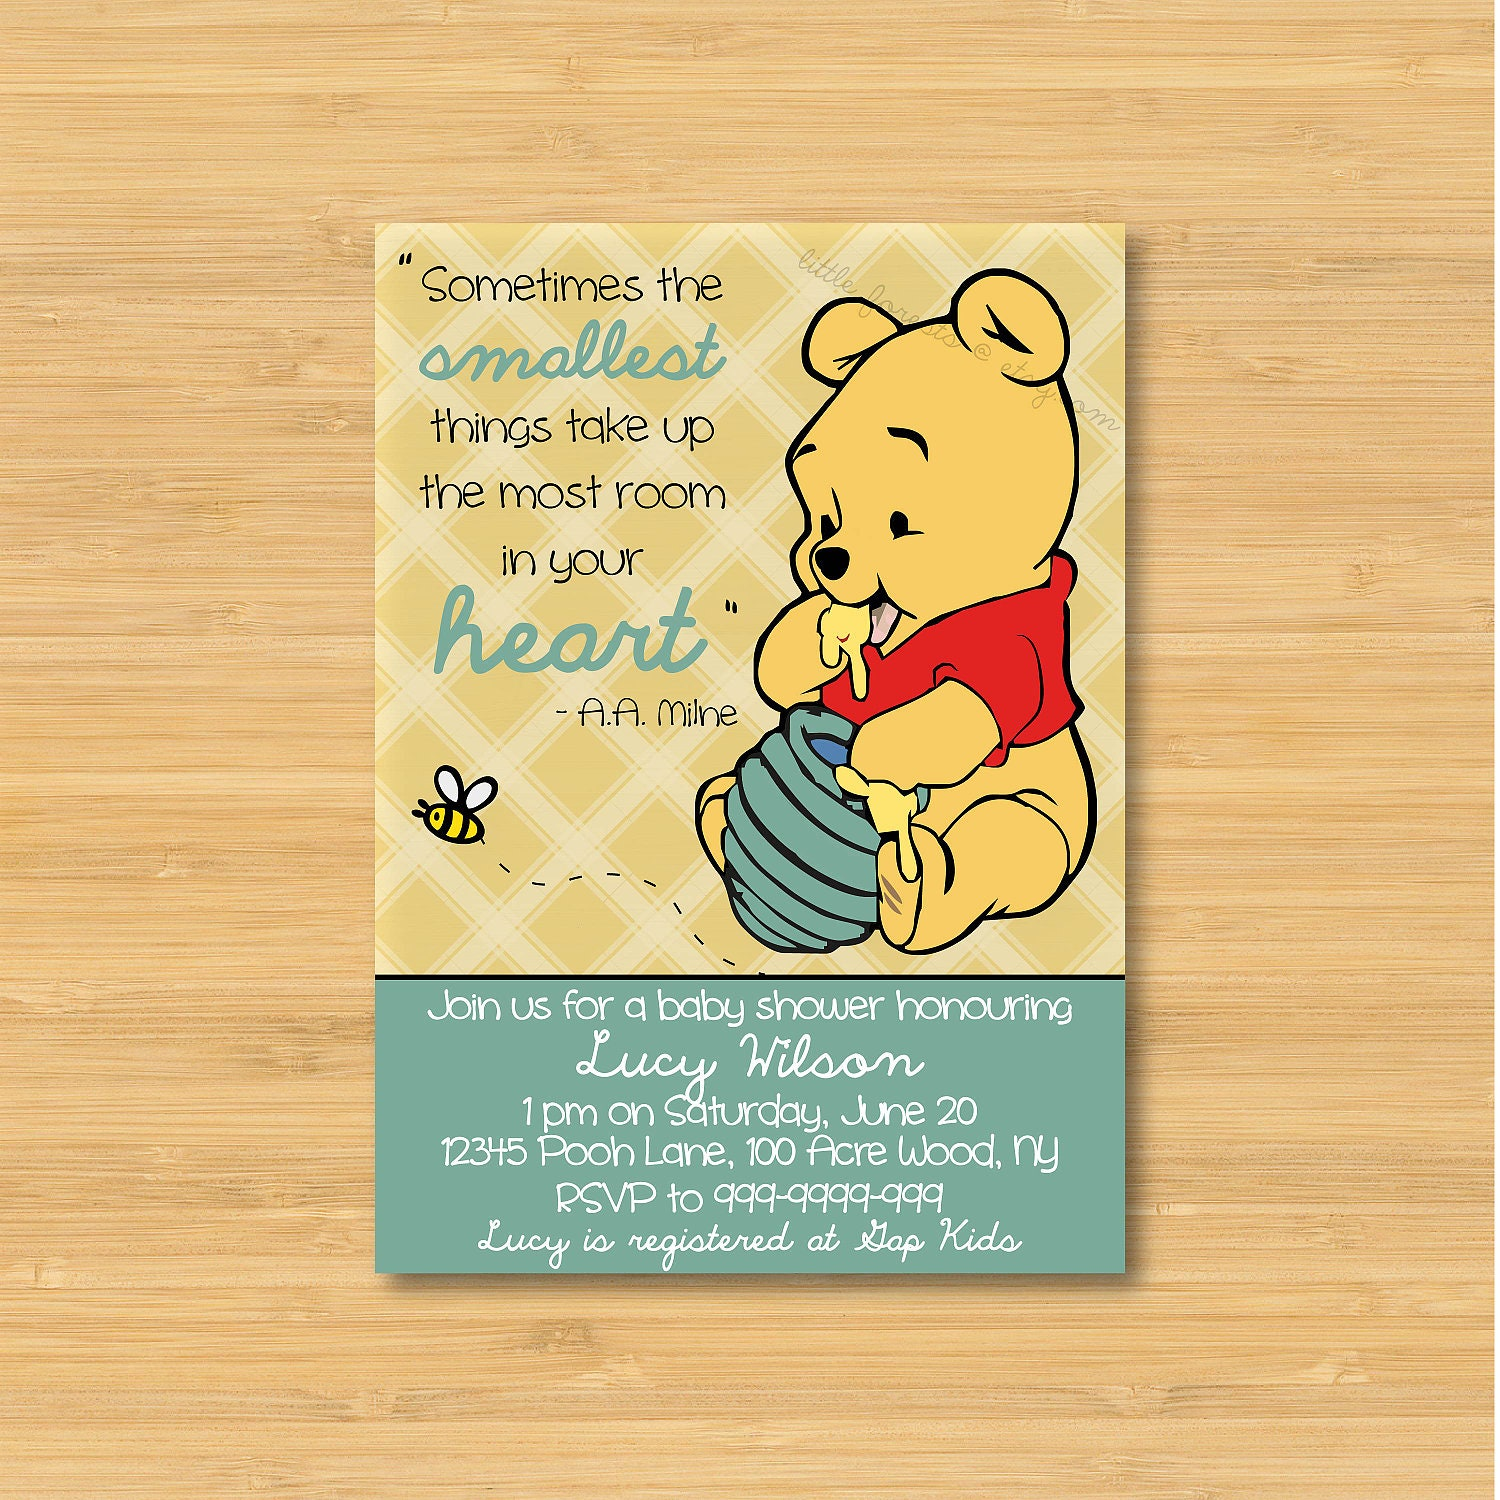 winnie the pooh baby shower invitation printable the rh etsy com Winnie the Pooh Pictures When a Baby Winnie the Pooh and Friends Clip Art